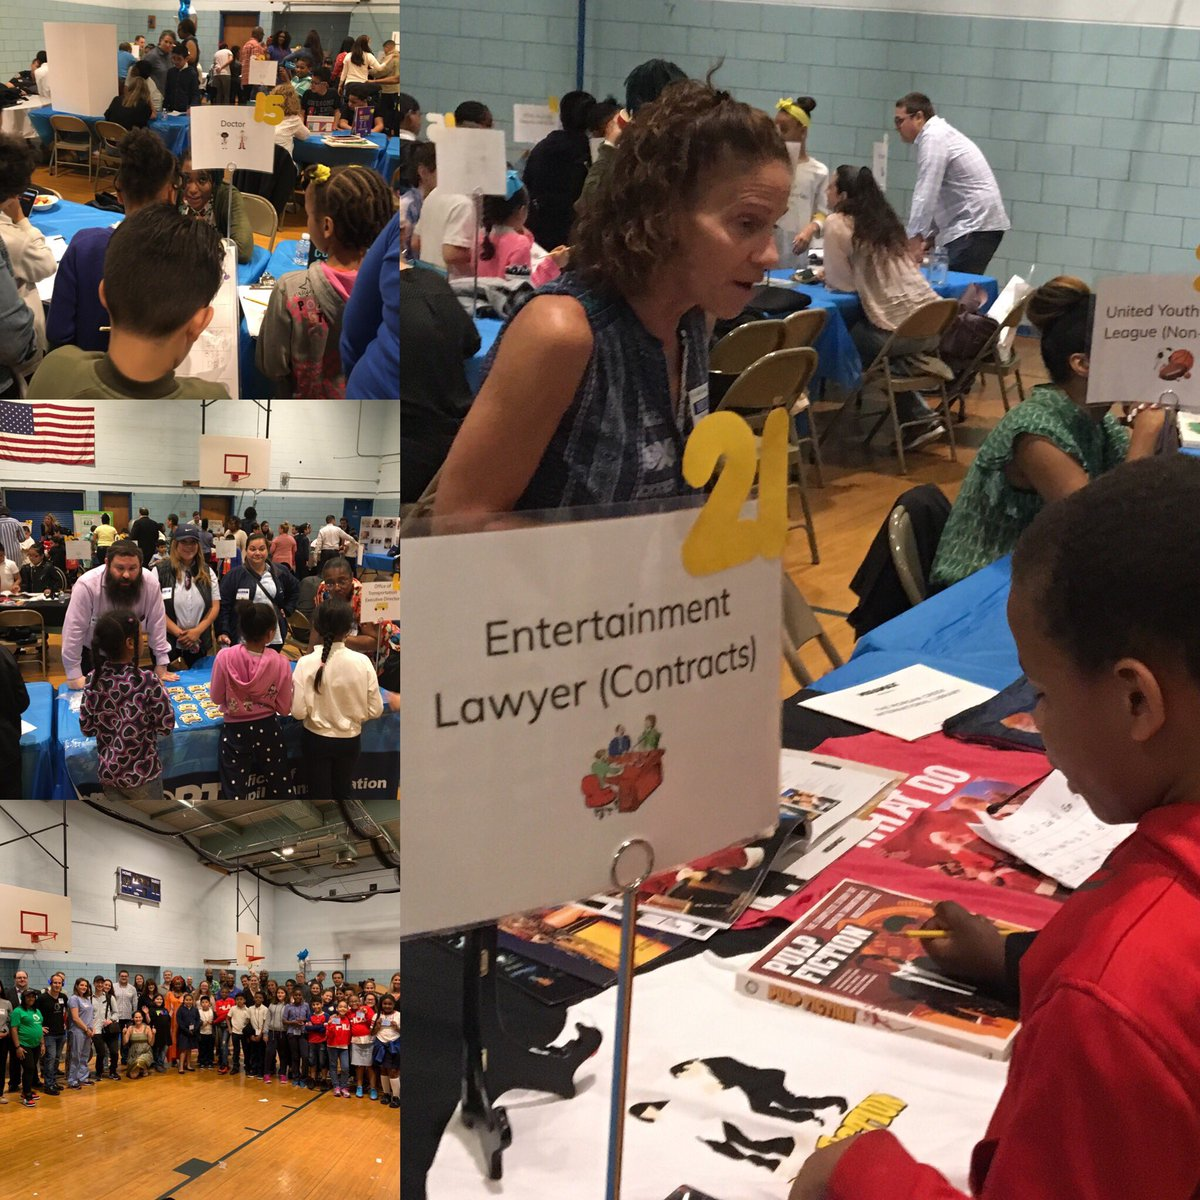 5th Annual Career Day at PS 146! @cec4eastharlem @CSD_4 @1ManhattanTeam @DOEChancellor @CWATSONHARRIS